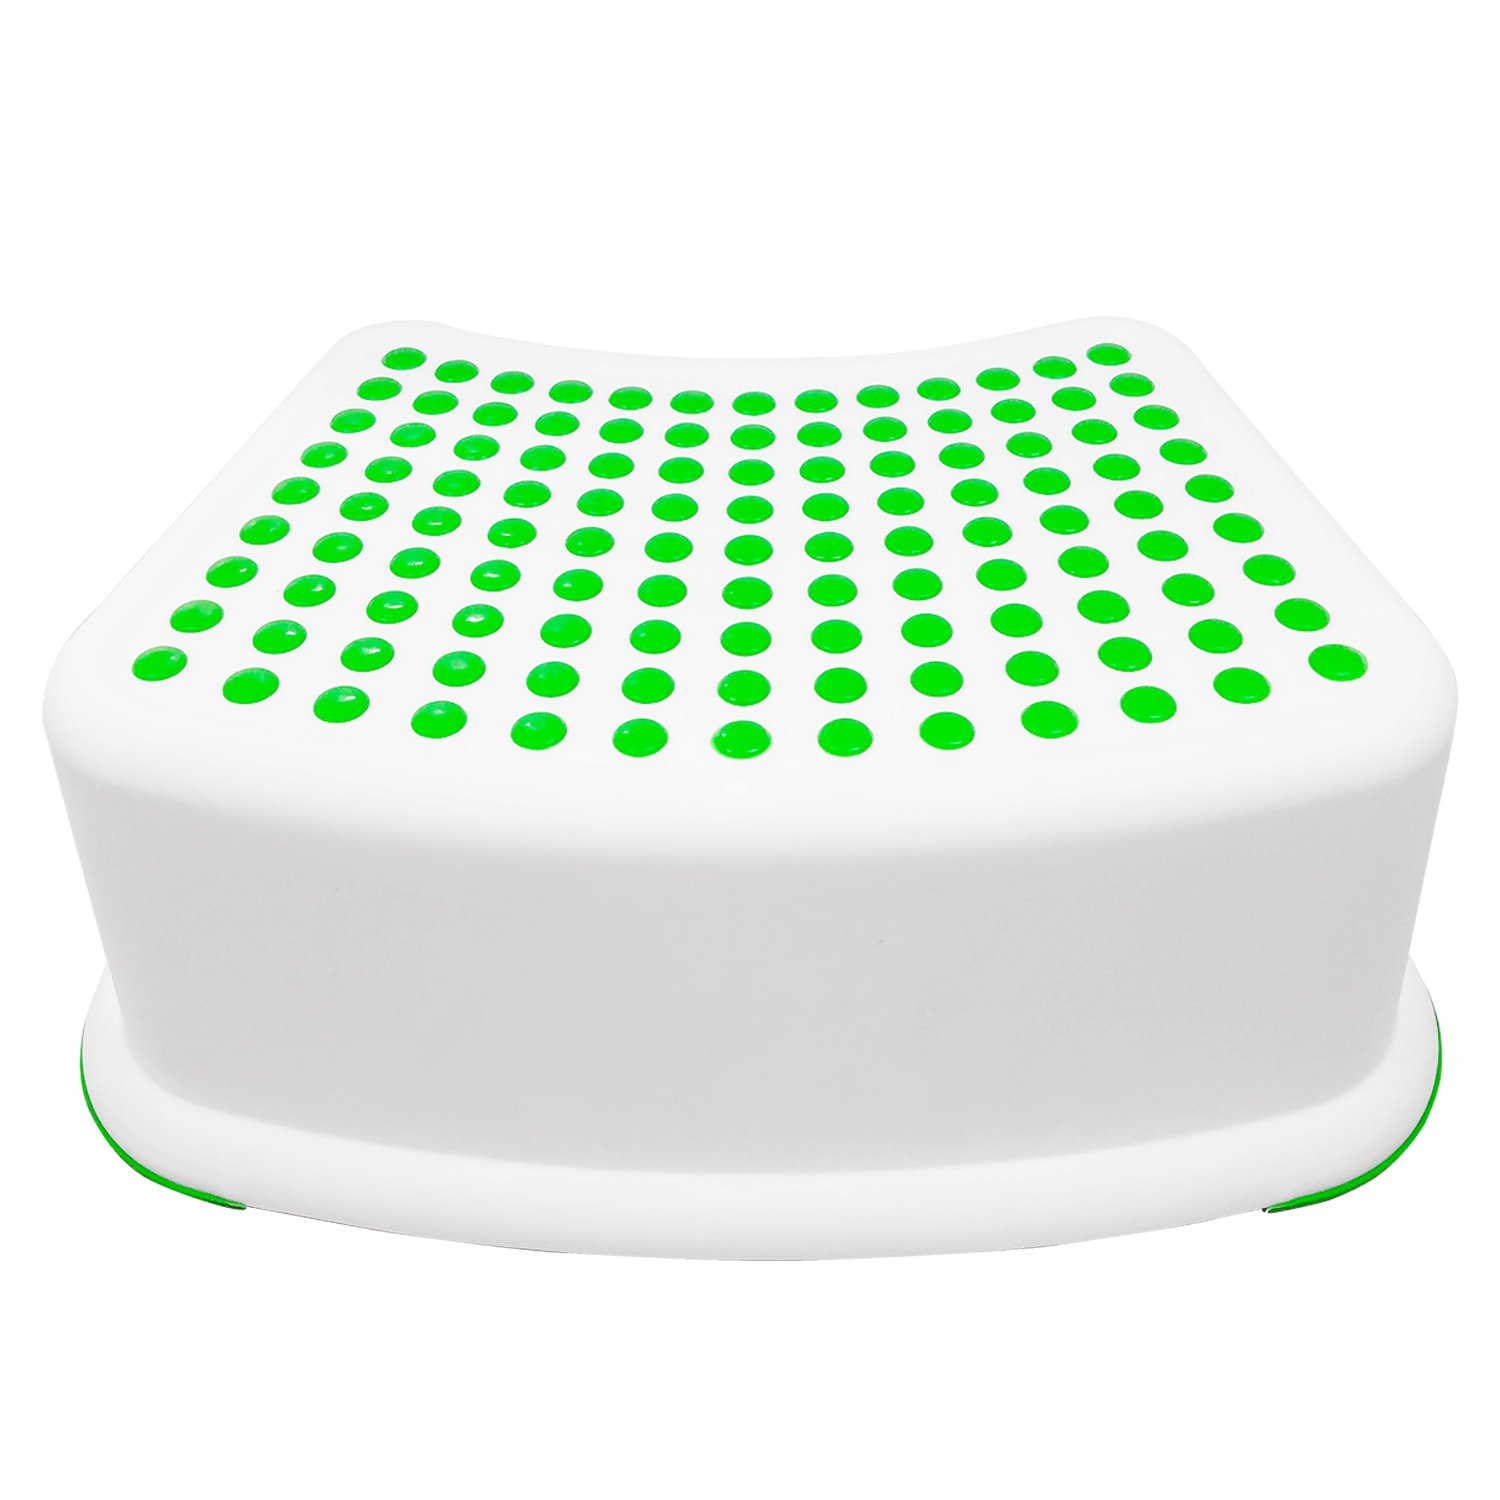 Amazon.com  Kids Green Step Stool - Great For Potty Training Bathroom Bedroom Toy Room Kitchen and Living Room. Perfect For Your House  Baby  sc 1 st  Amazon.com & Amazon.com : Kids Green Step Stool - Great For Potty Training ... islam-shia.org